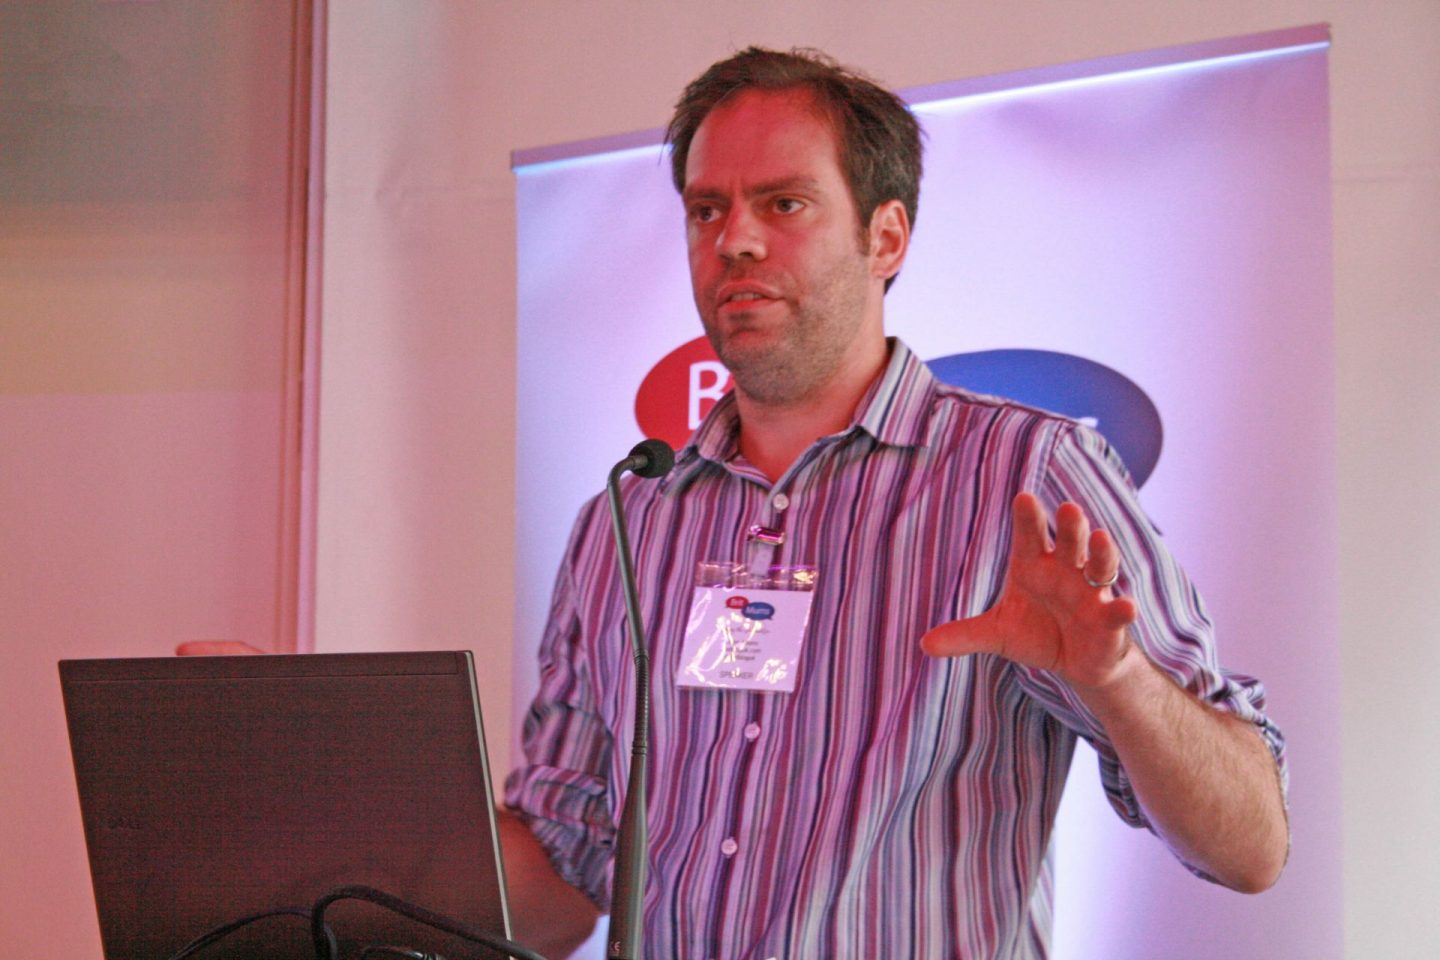 Blogger and content creator John Adams of Dadbloguk and Dadpoduk speaking at the Britmums conference in 2013